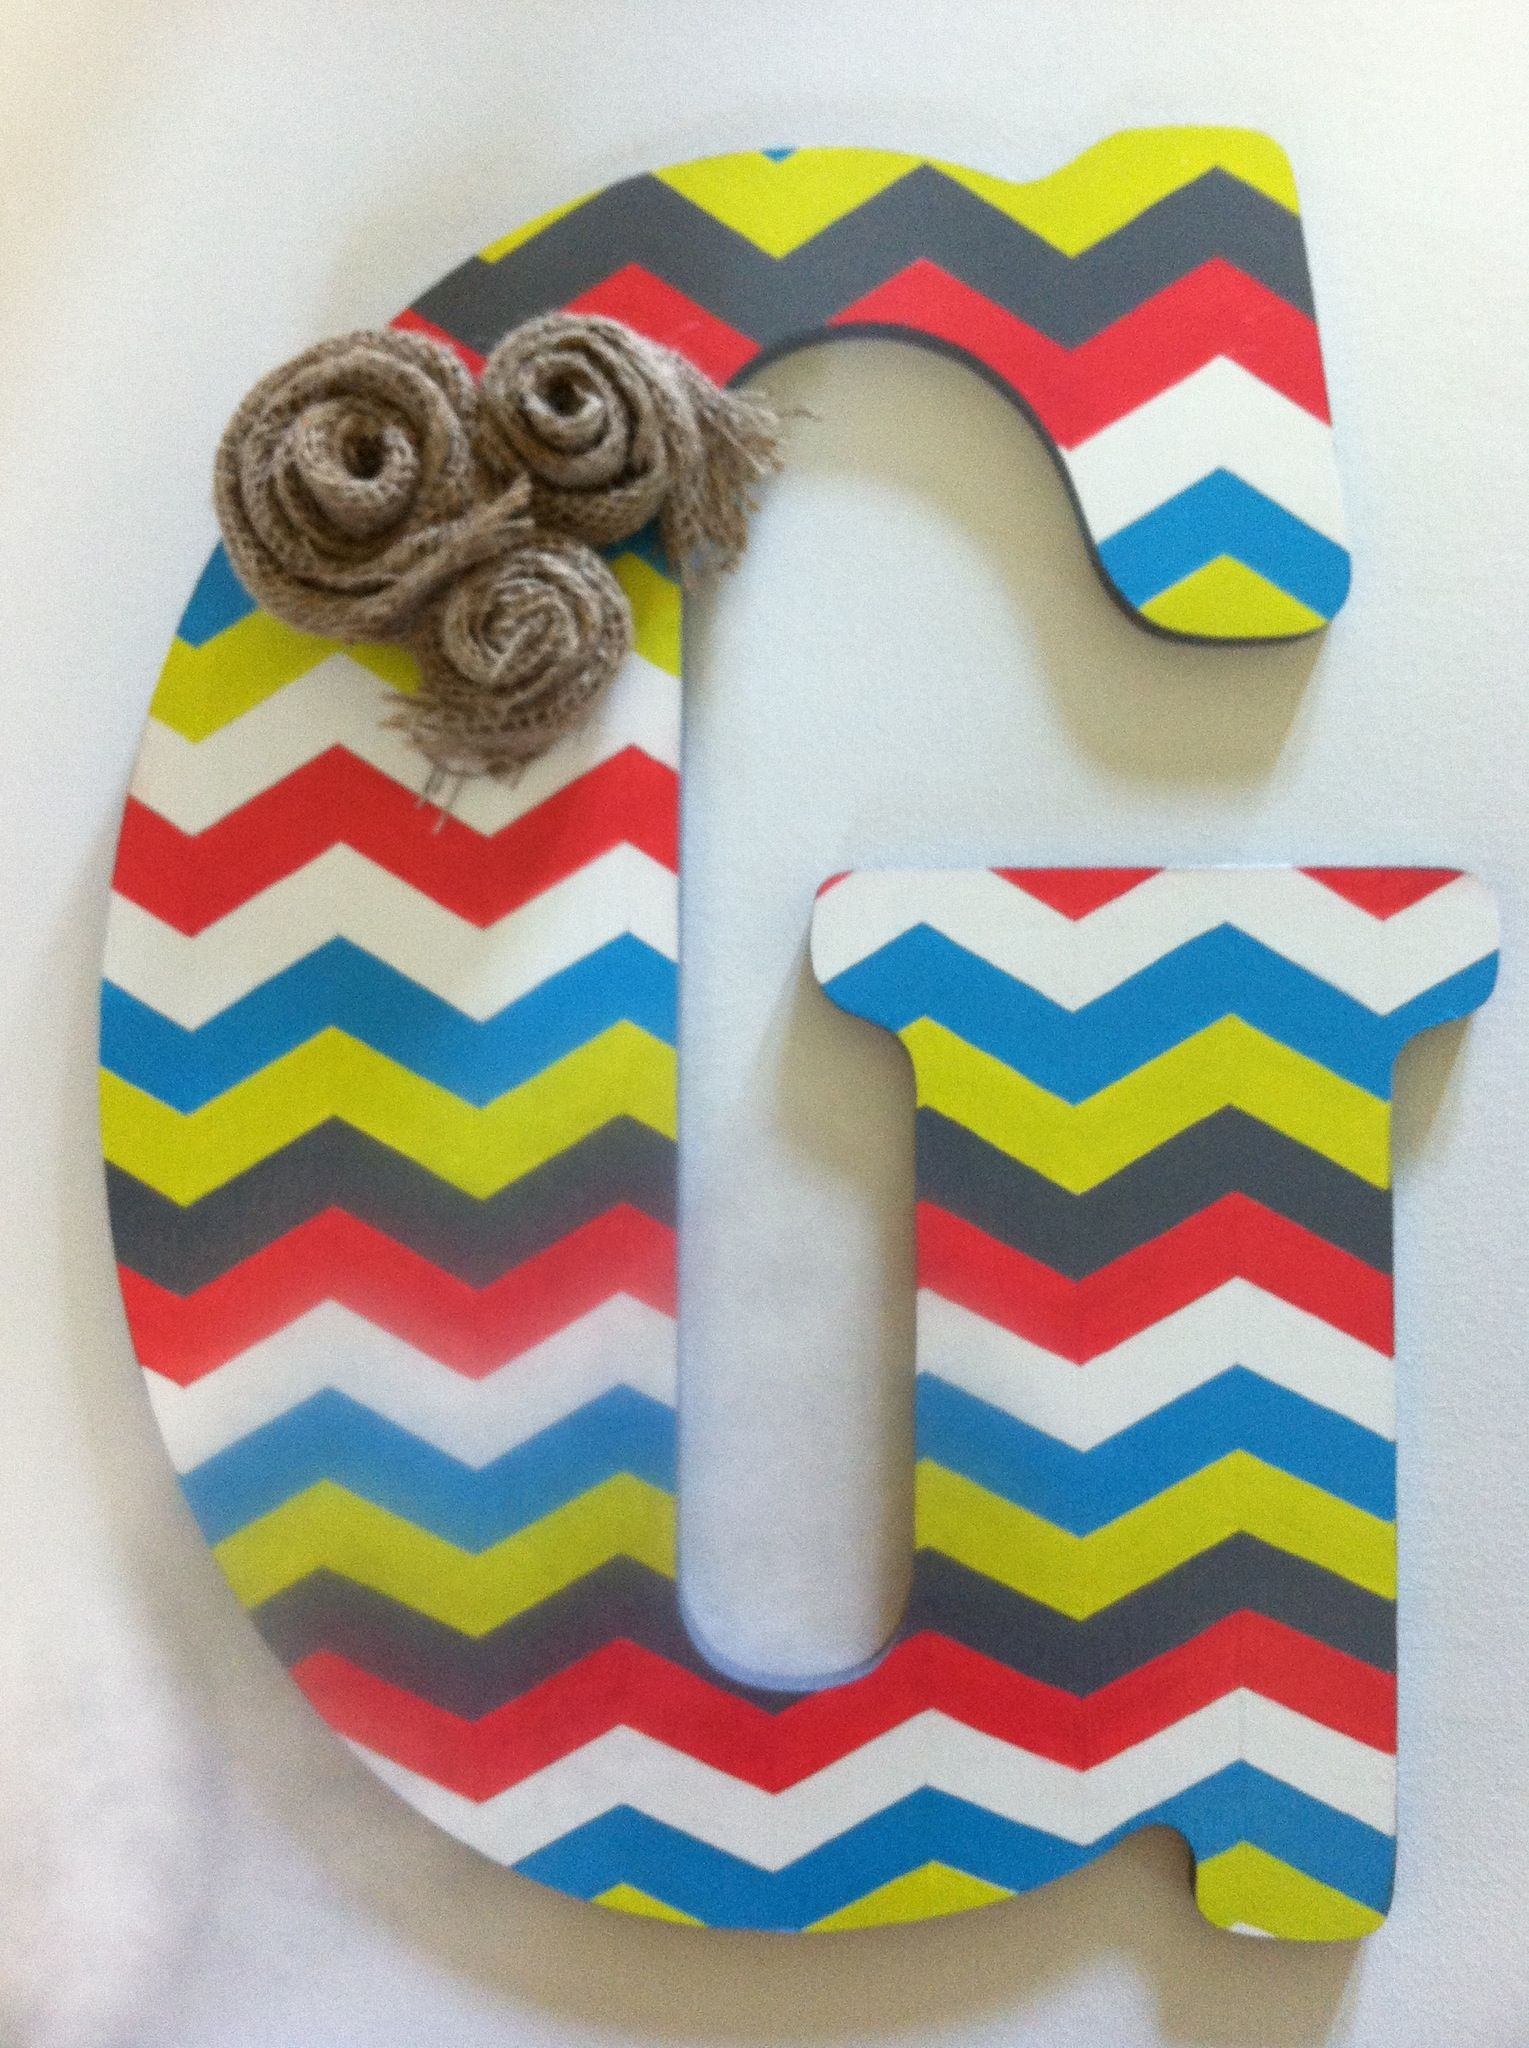 big wood letter from hobby lobby i painted for front door in chevron print and then